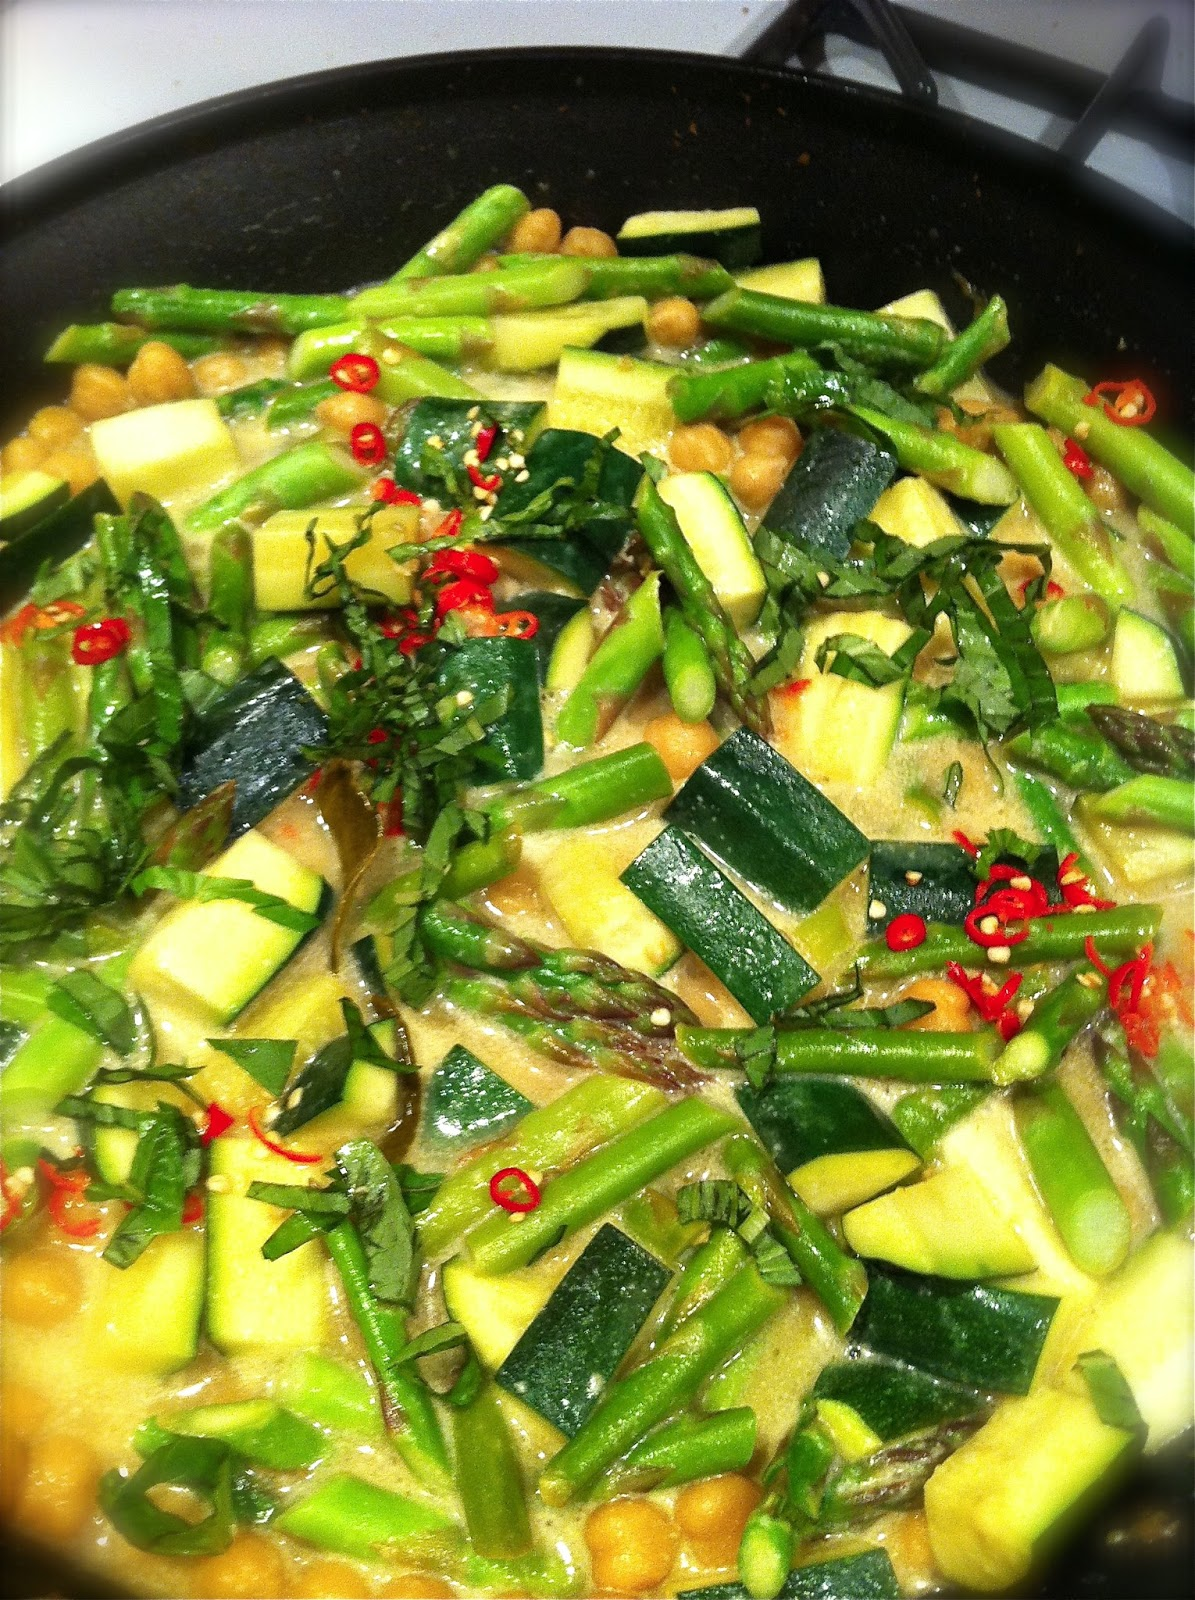 What's cookin': Asparagus, Zucchini and Chickpea Green Curry